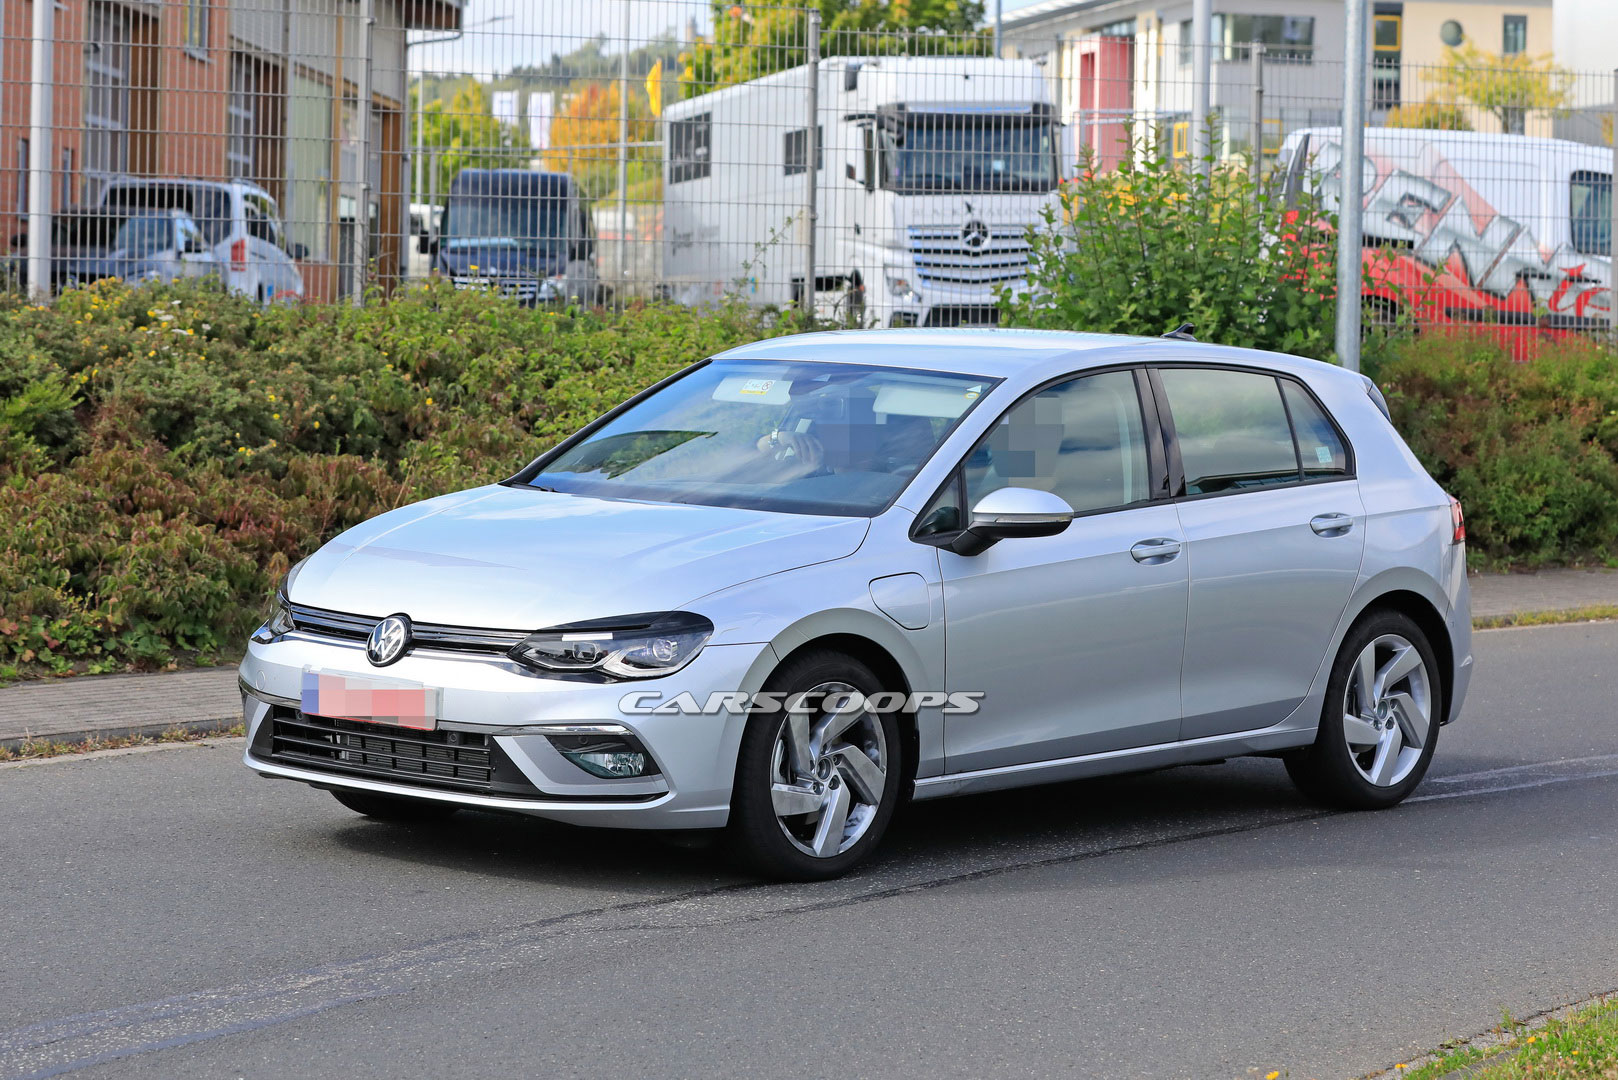 Next-Gen Volkswagen Golf Gets An Official Date